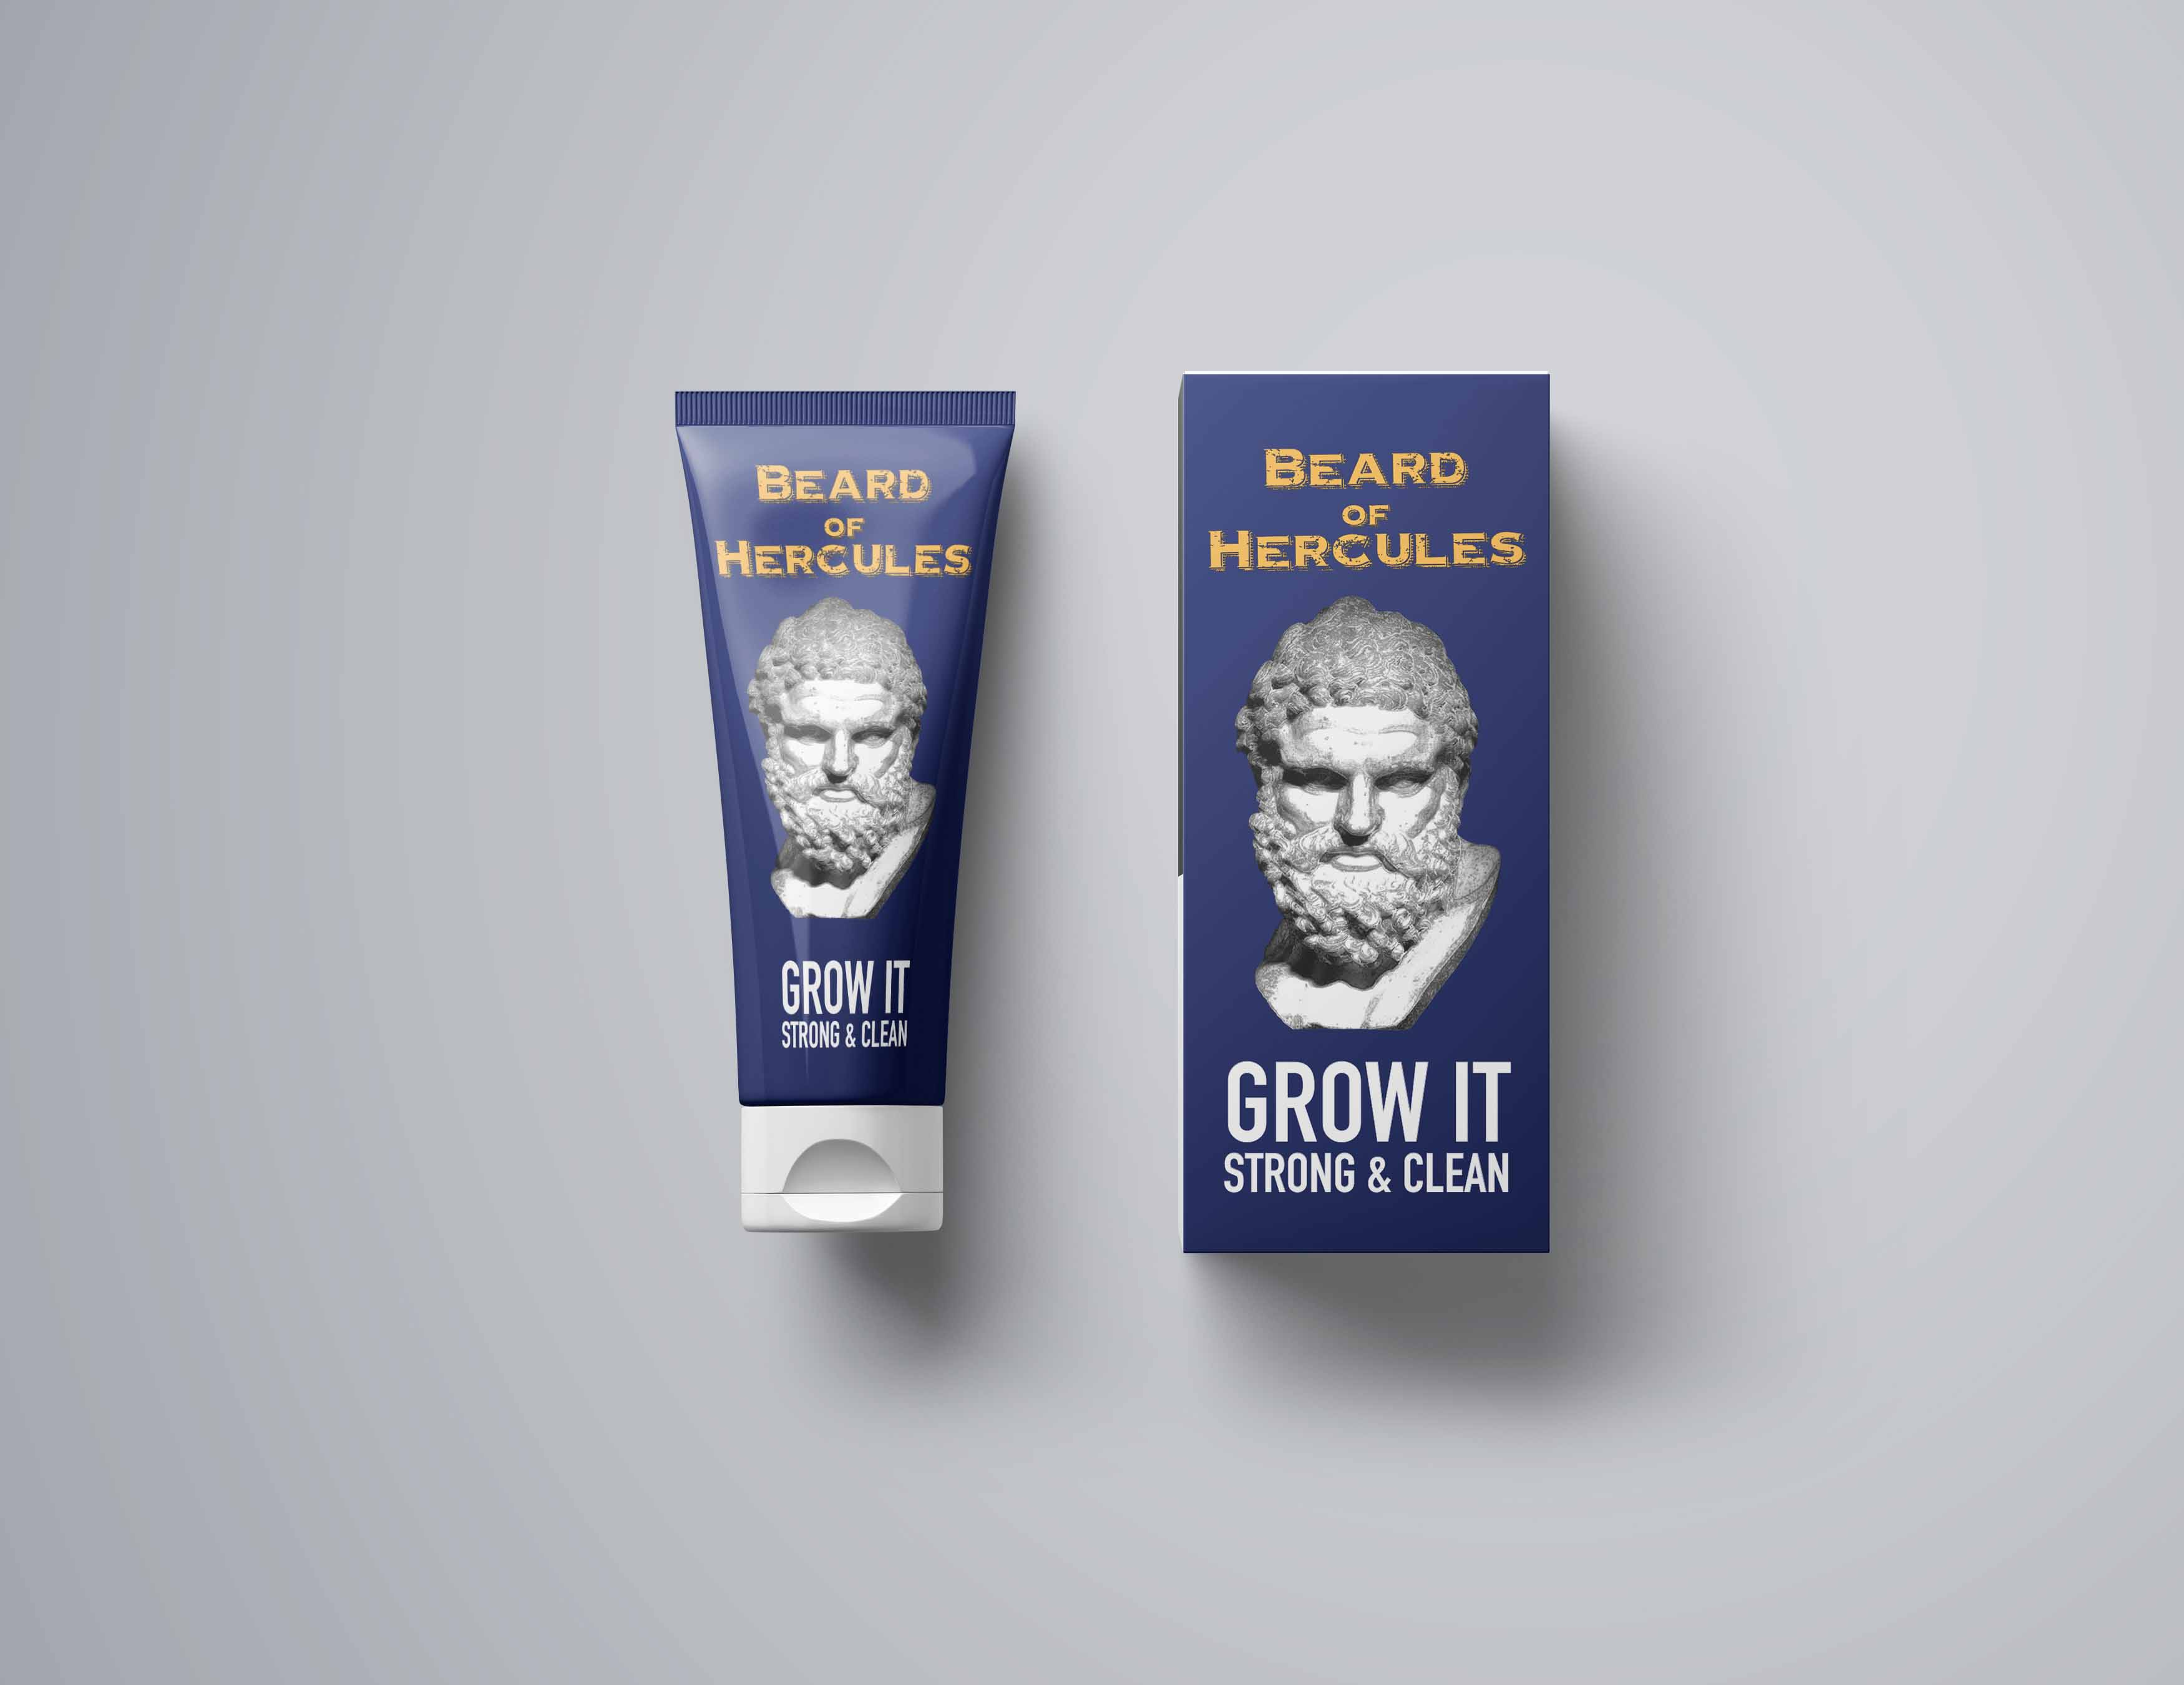 Beard of Hercules Packaging